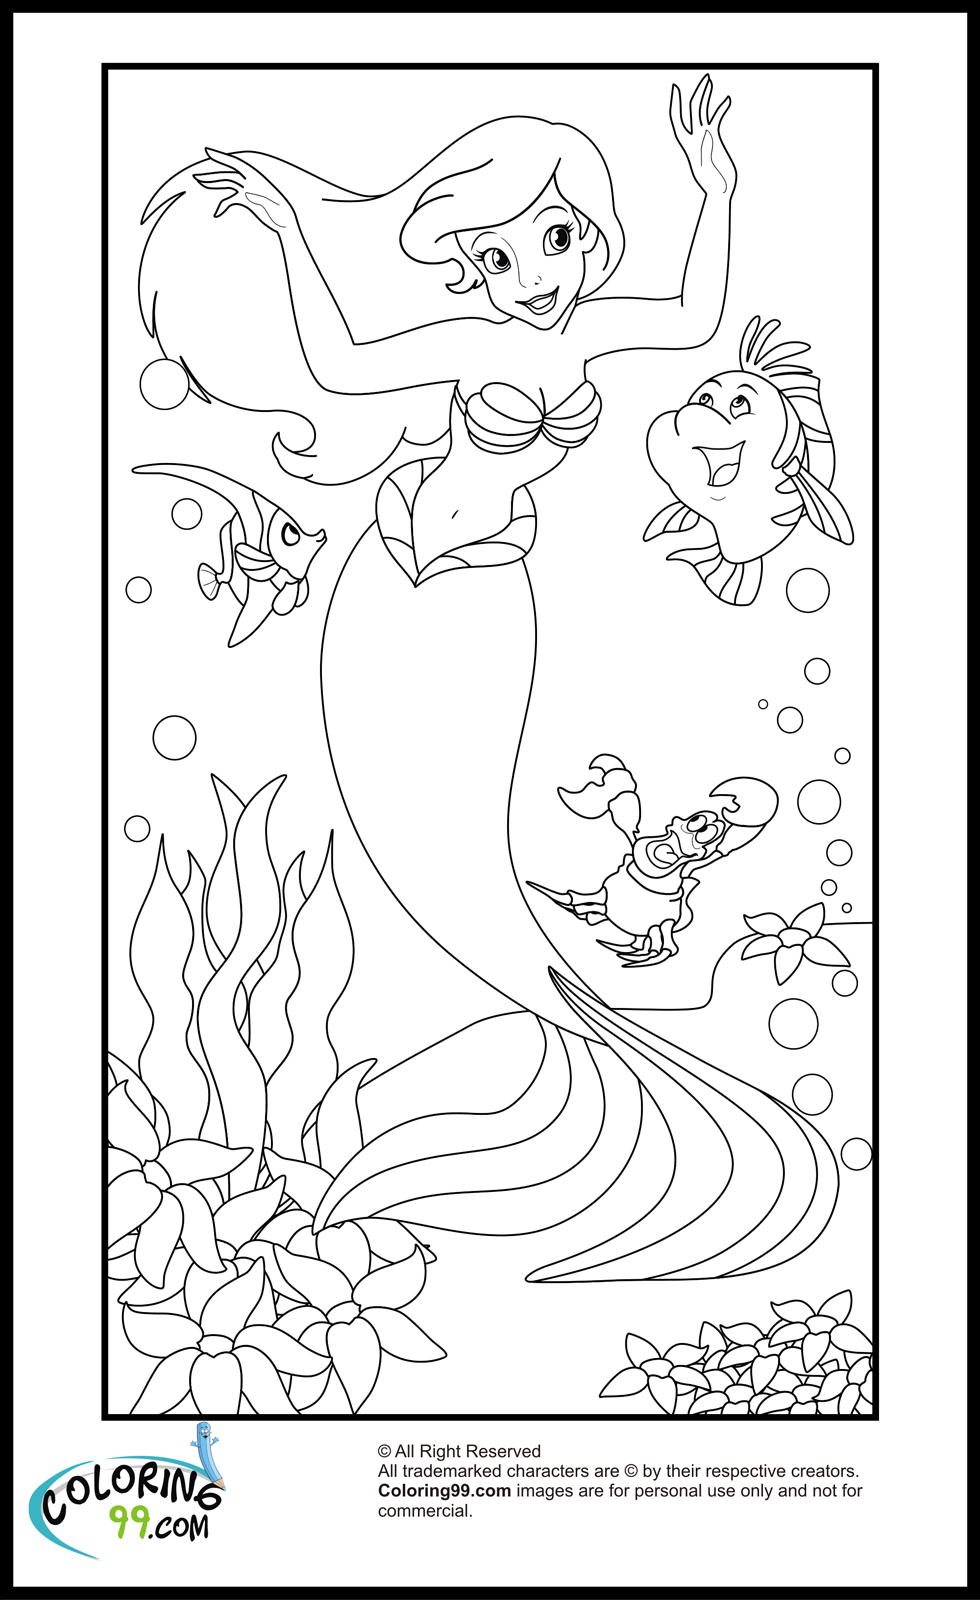 ariel disney coloring disney princess ariel coloring pages team colors disney coloring ariel